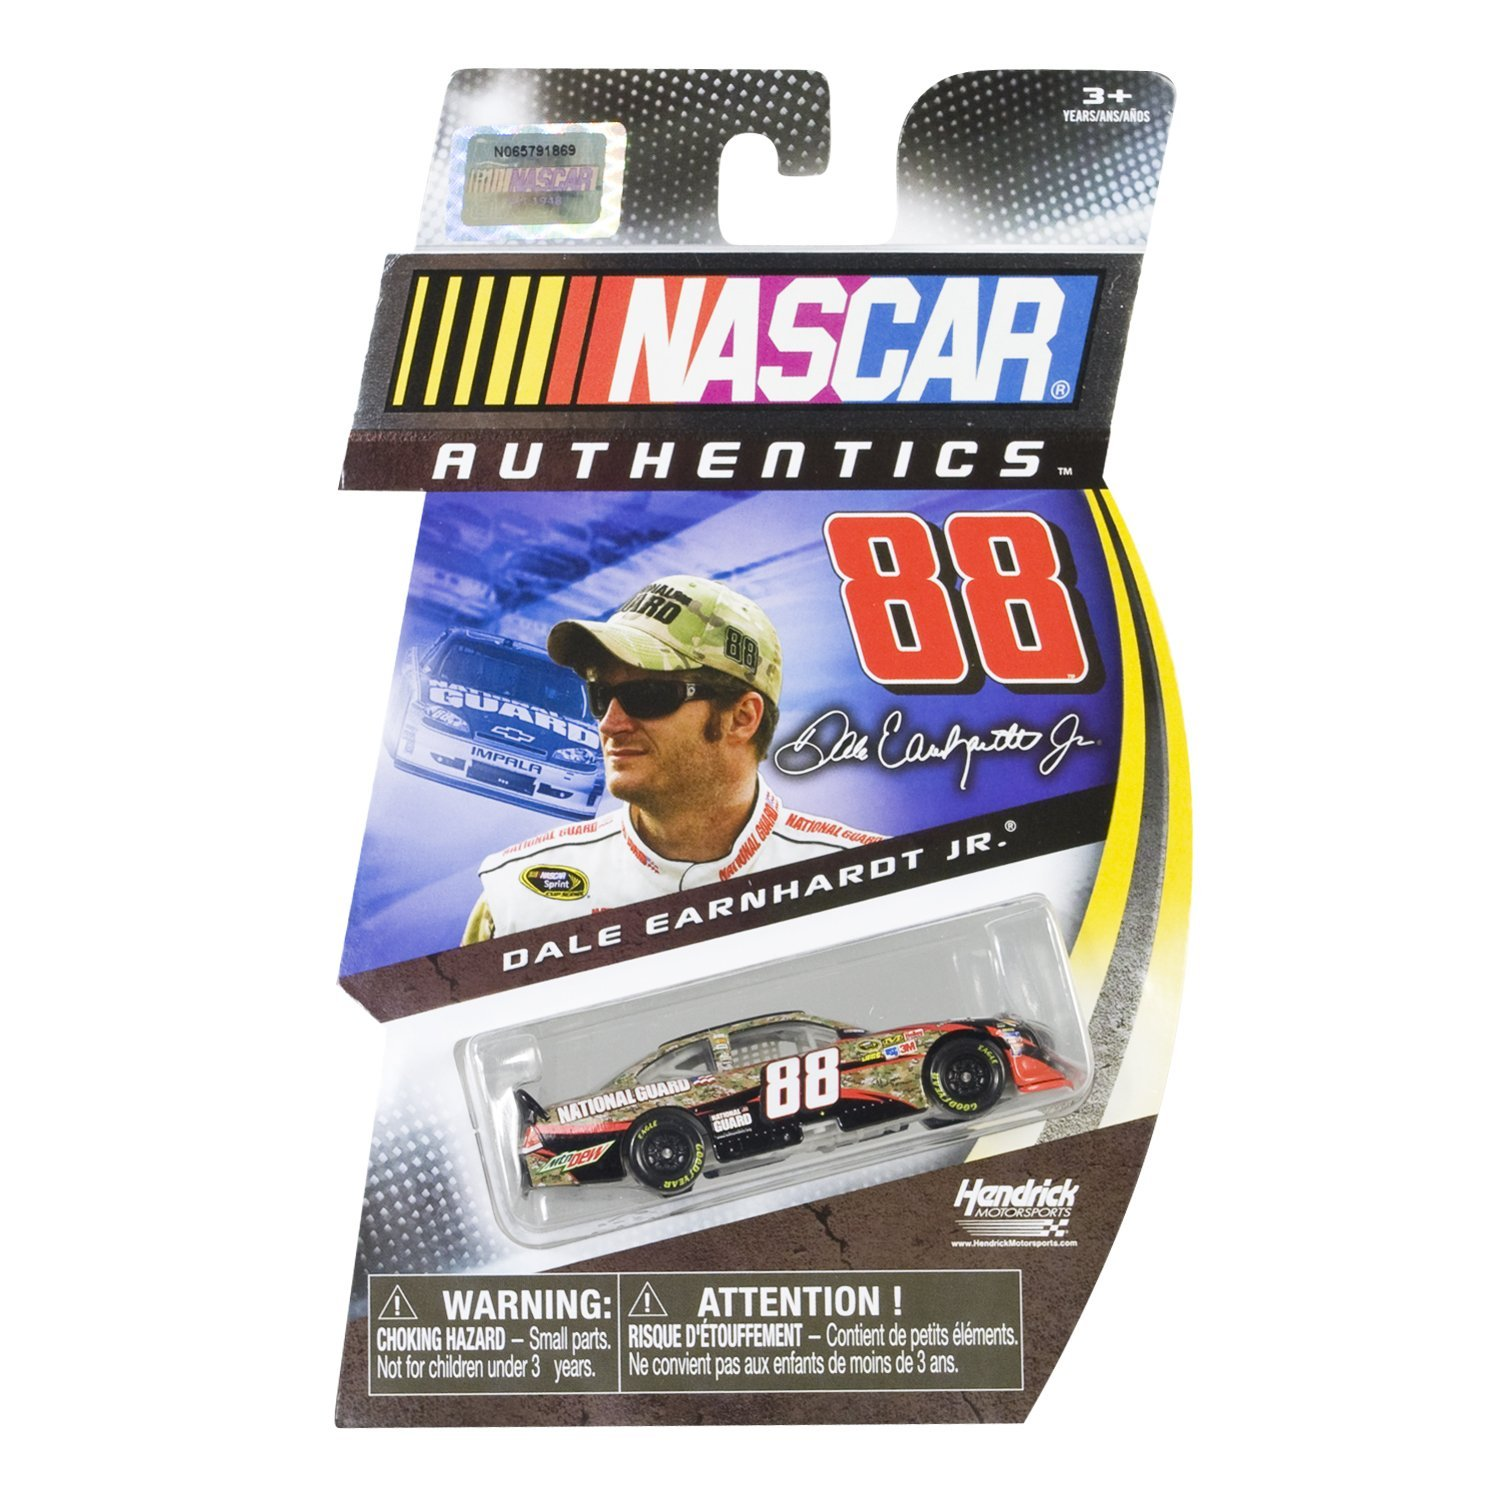 Authentics Dale Earnhardt Jr. Diecast Collector Car #88 National Guard 1:64 Scale, Full... by